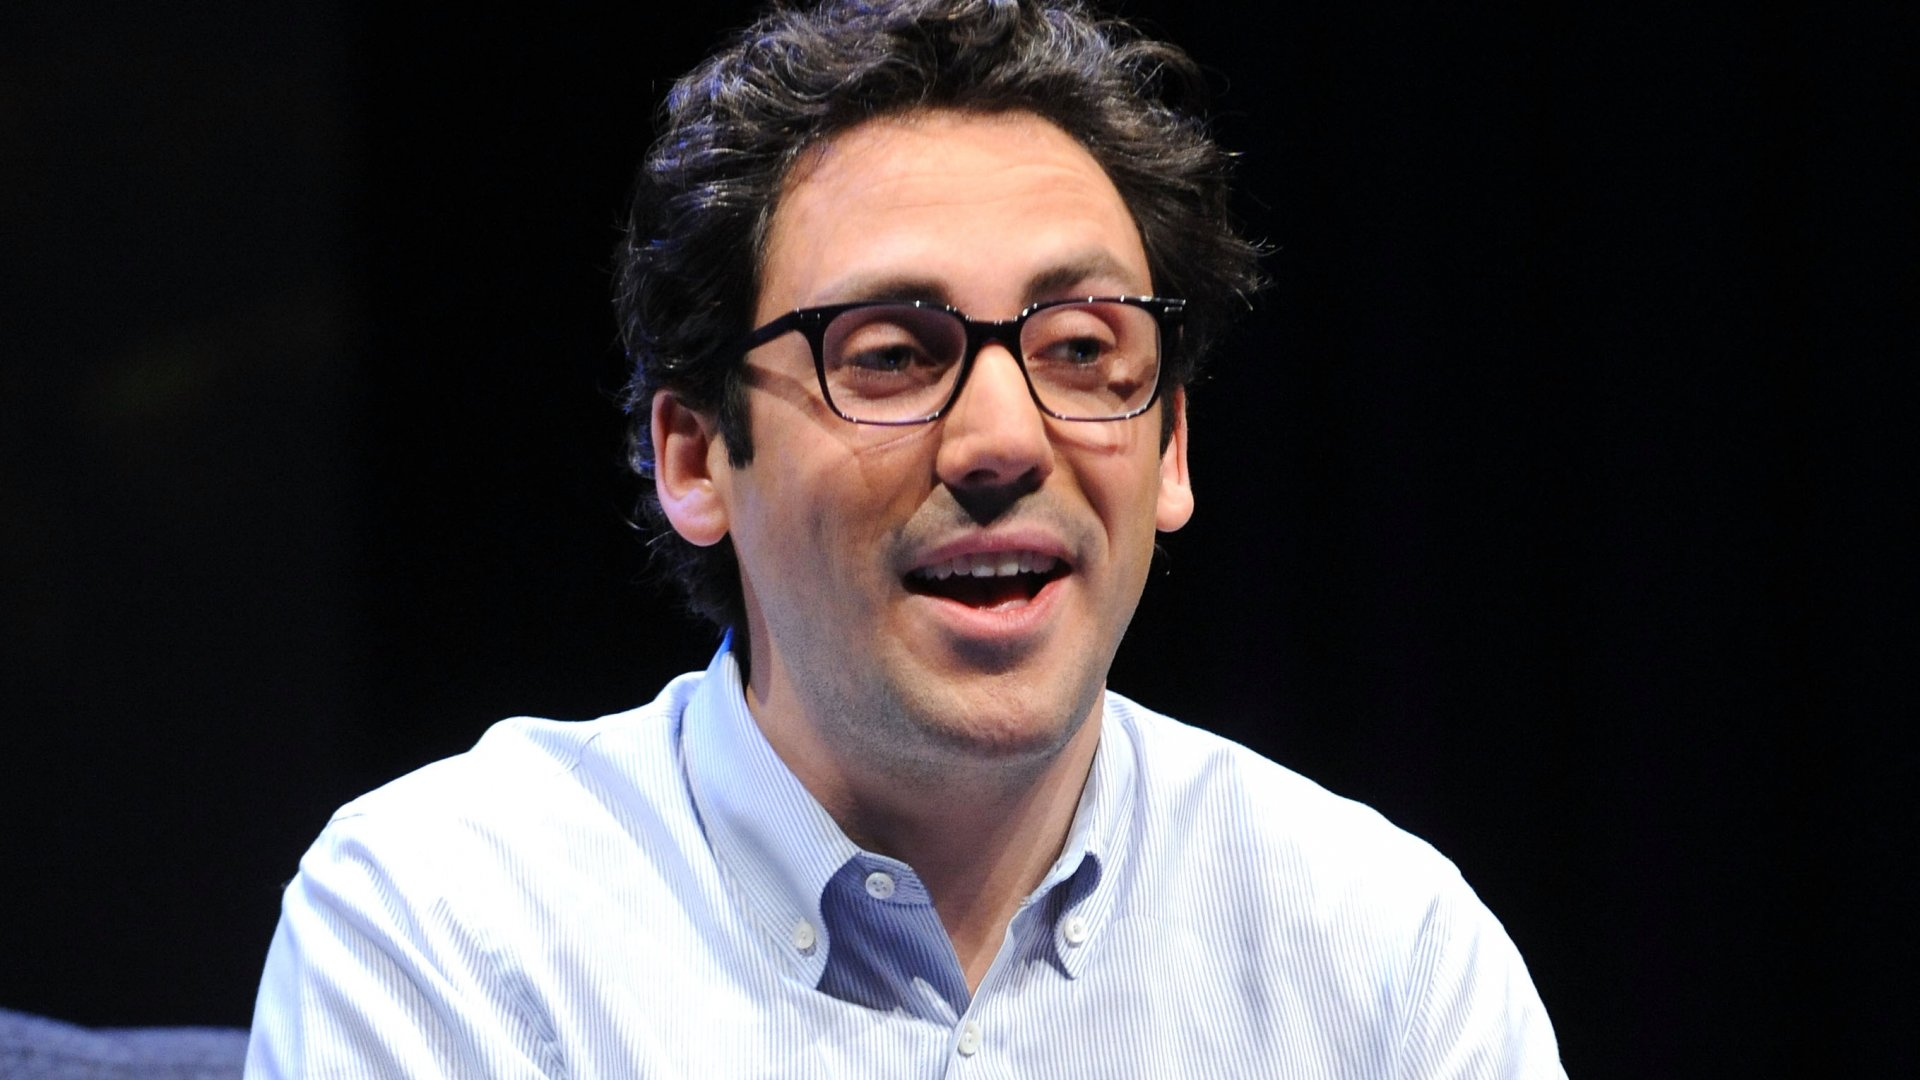 These Are the Keys to Warby Parker's Sustainable Growth